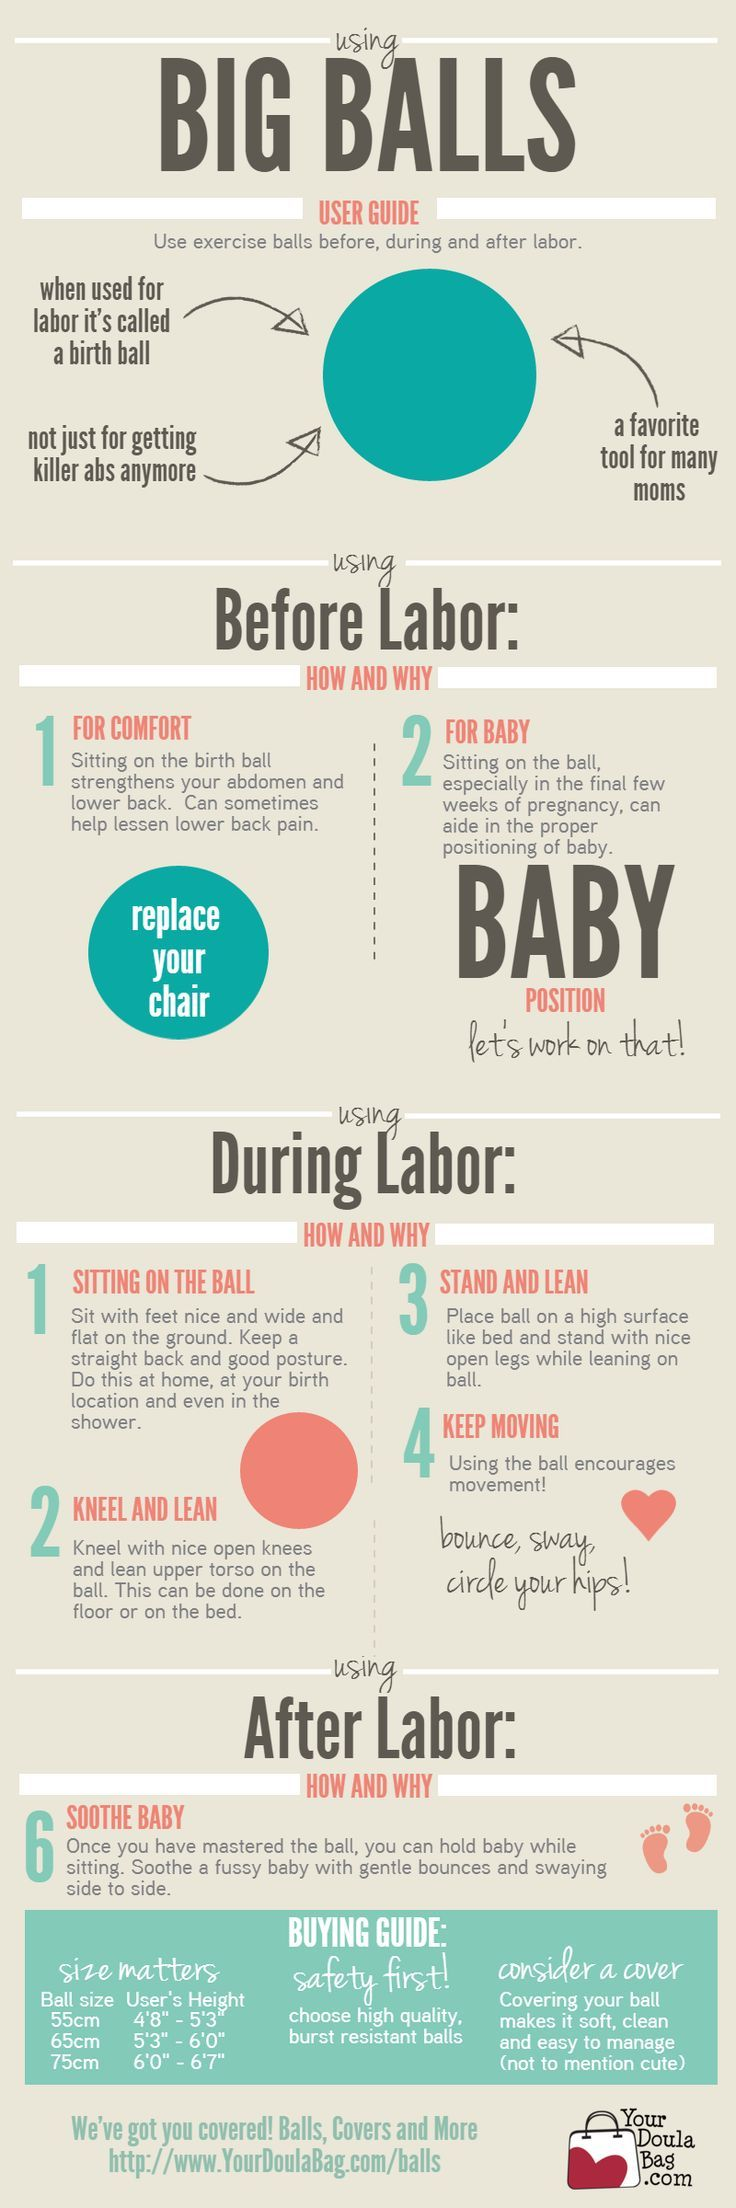 Birth Balls And Labor - How To Use Infographic  Pregnancy -7021